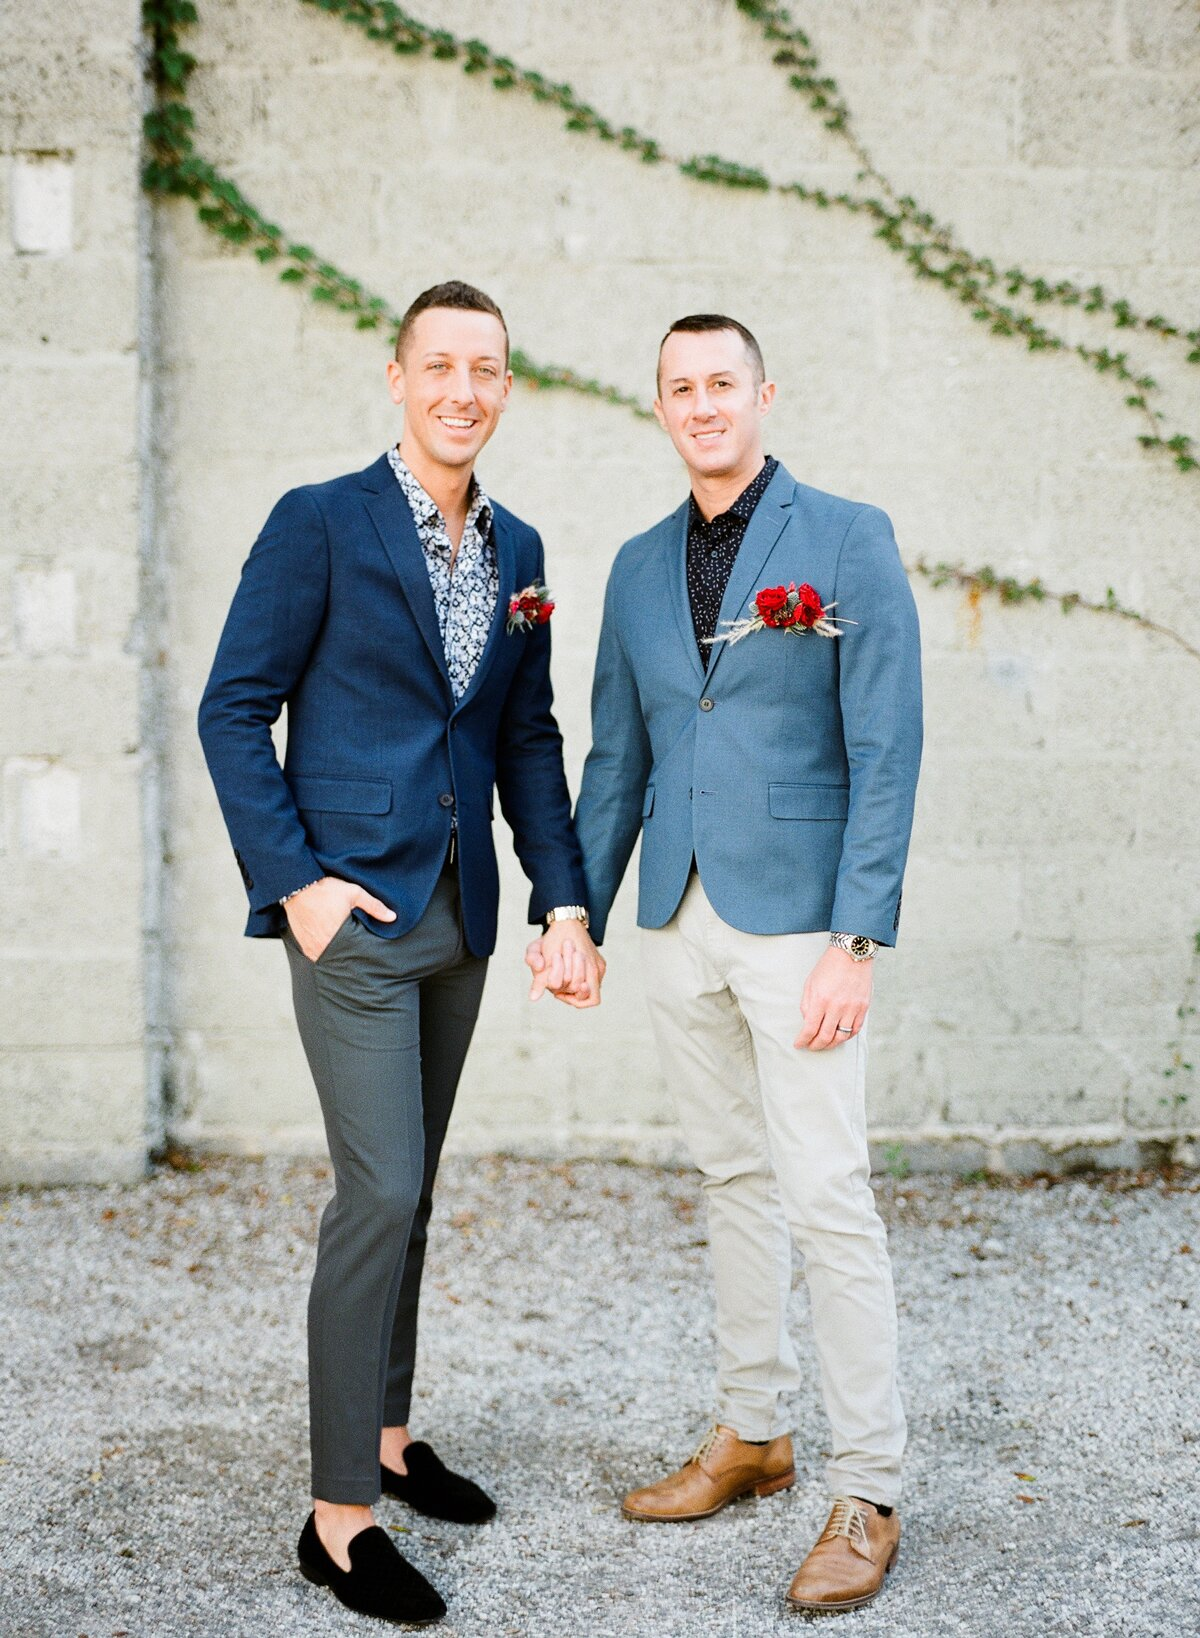 Outfit Inspiration From The Most Stylish Same Sex Grooms Martha